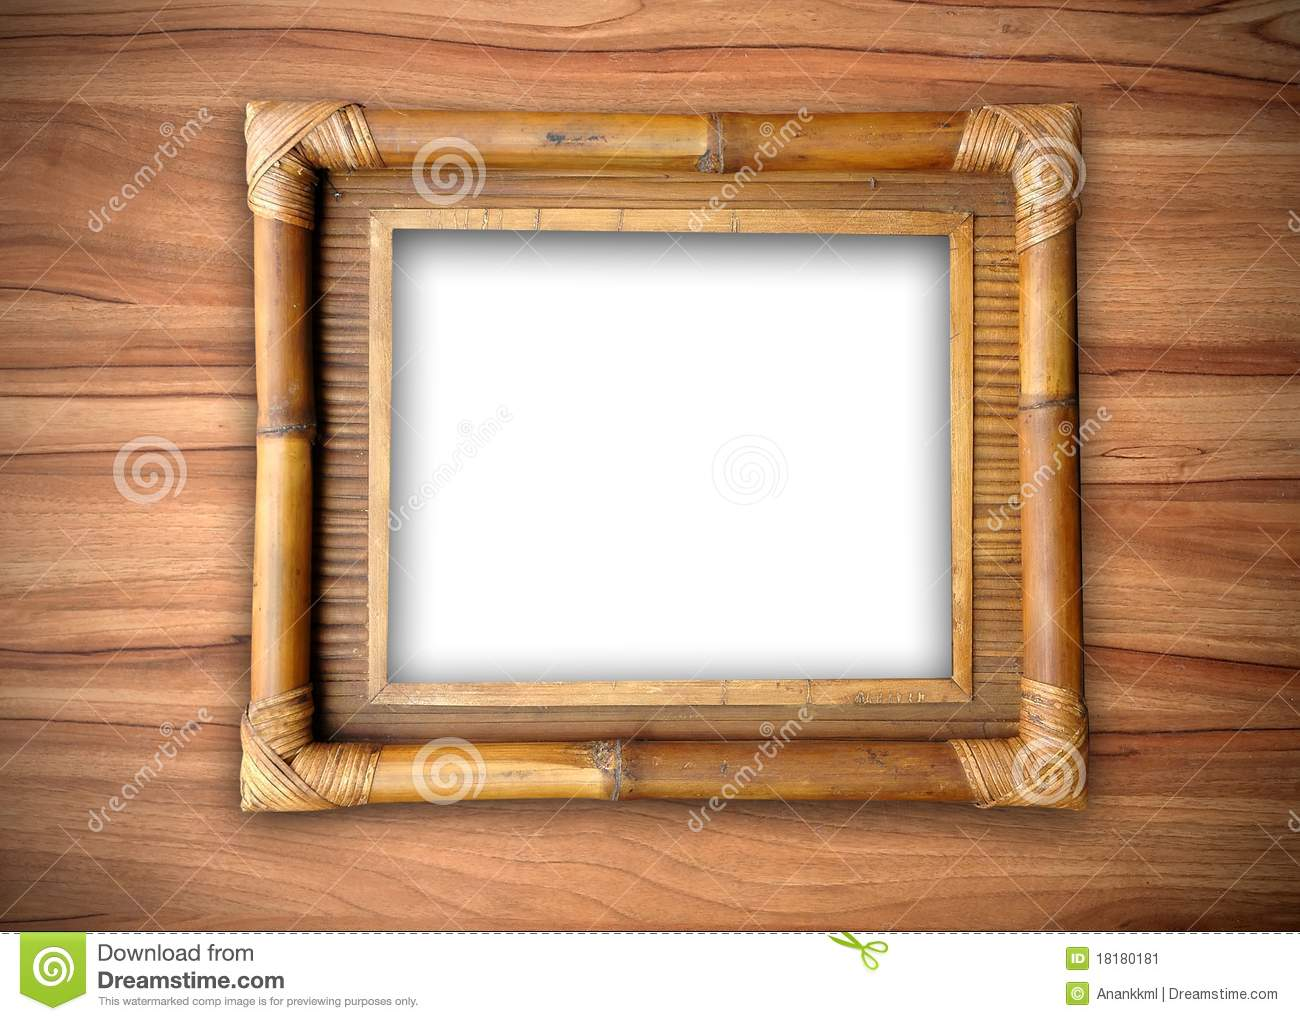 bamboo wood frame - photo #26